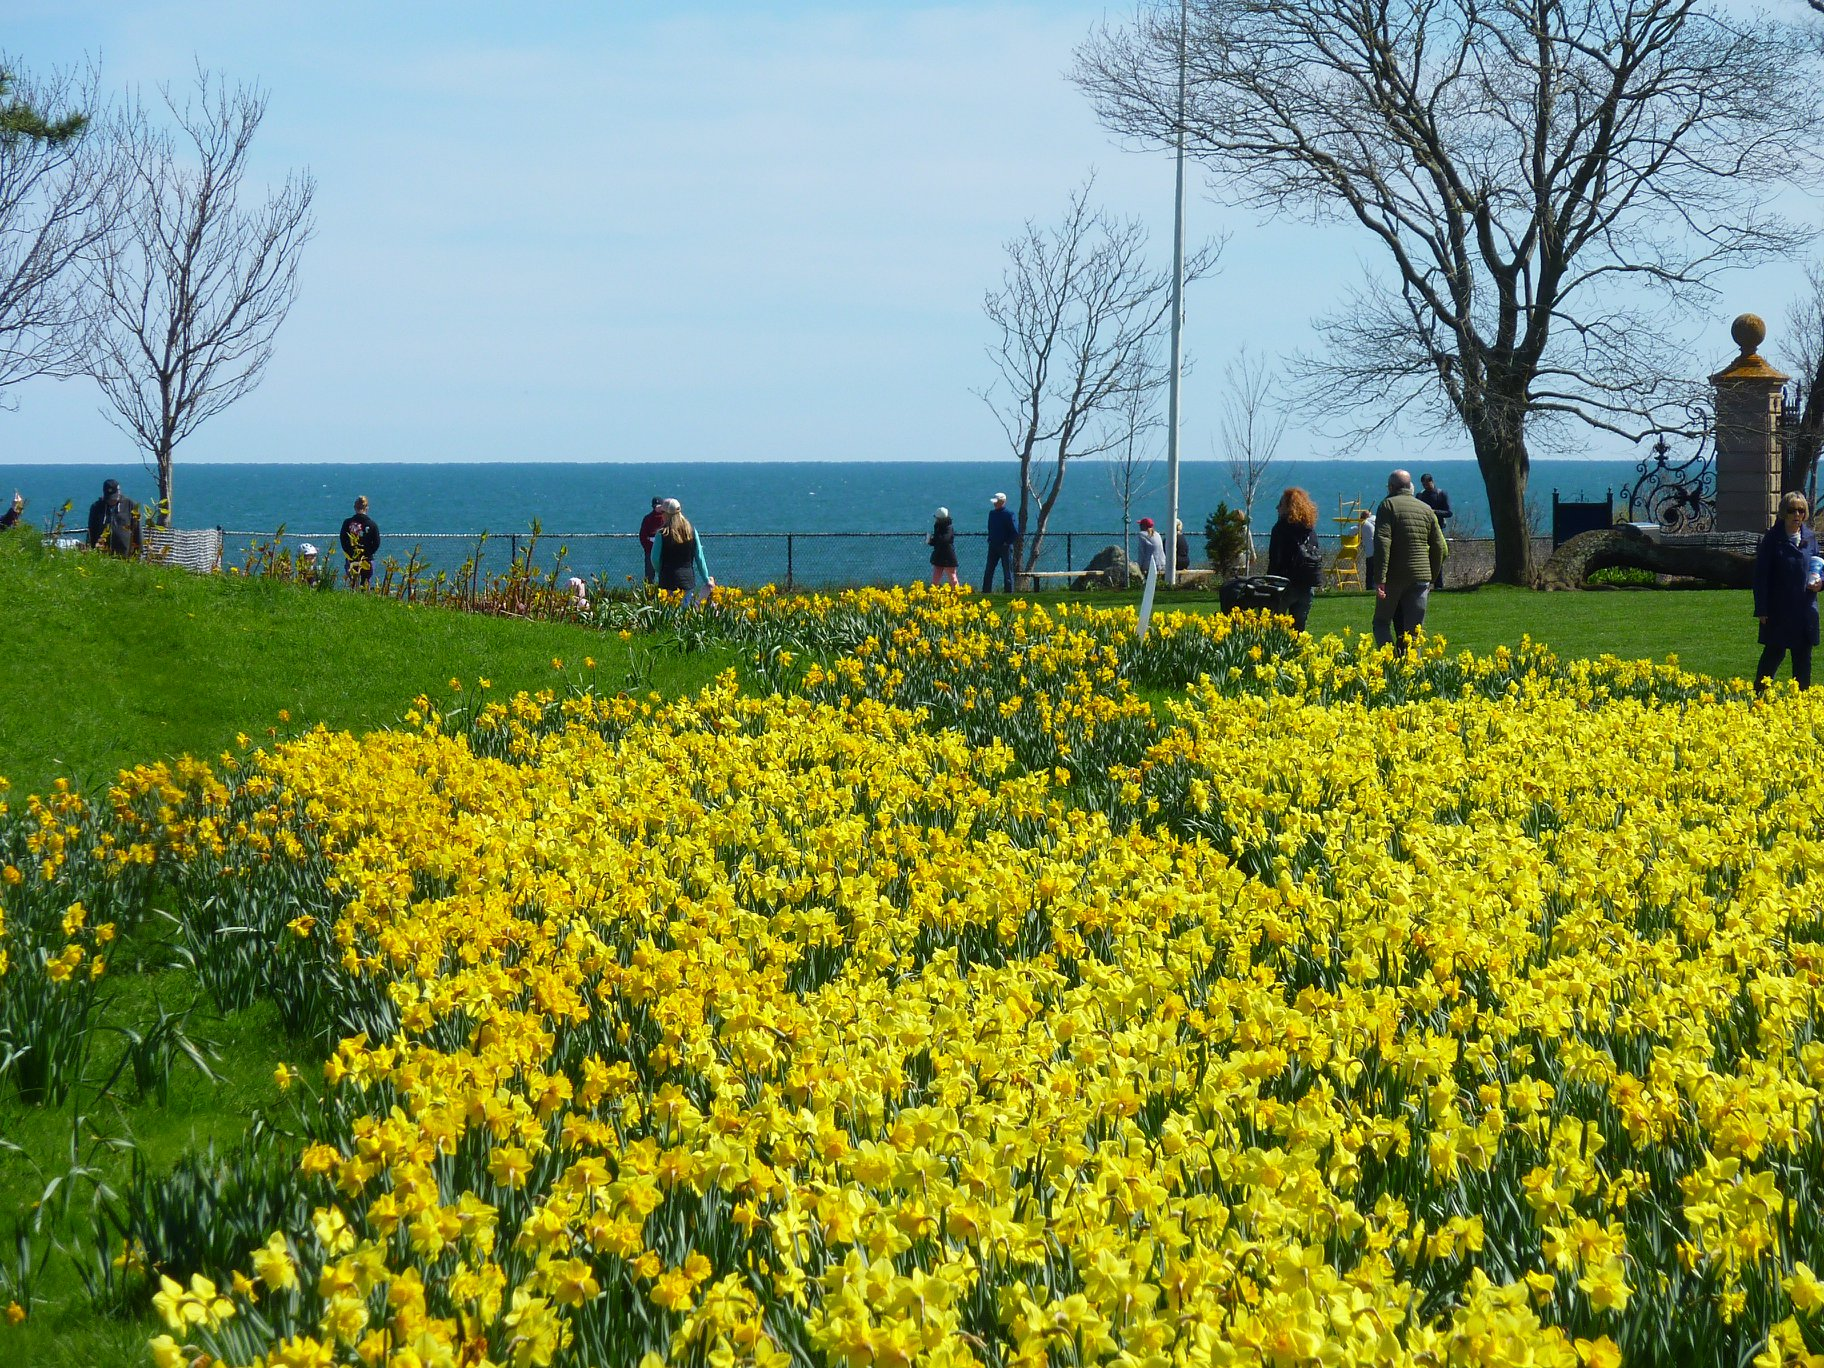 Daffodils at the Cliff Walk in Newport, R.I.